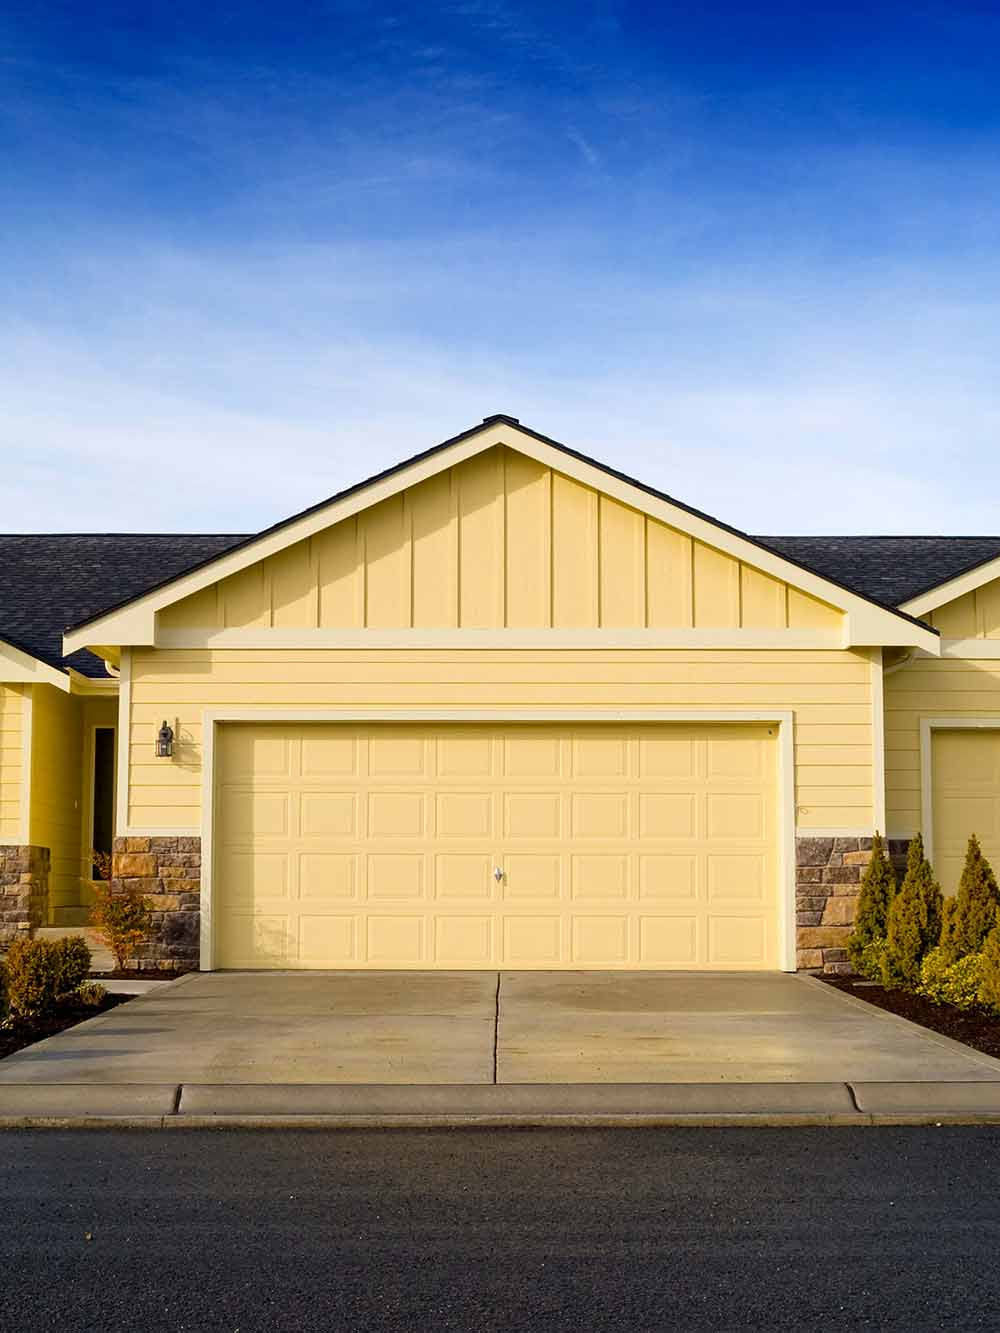 Garage Of A Newly Constructed Home   Garage Door Repair In San Bernardino,  CA